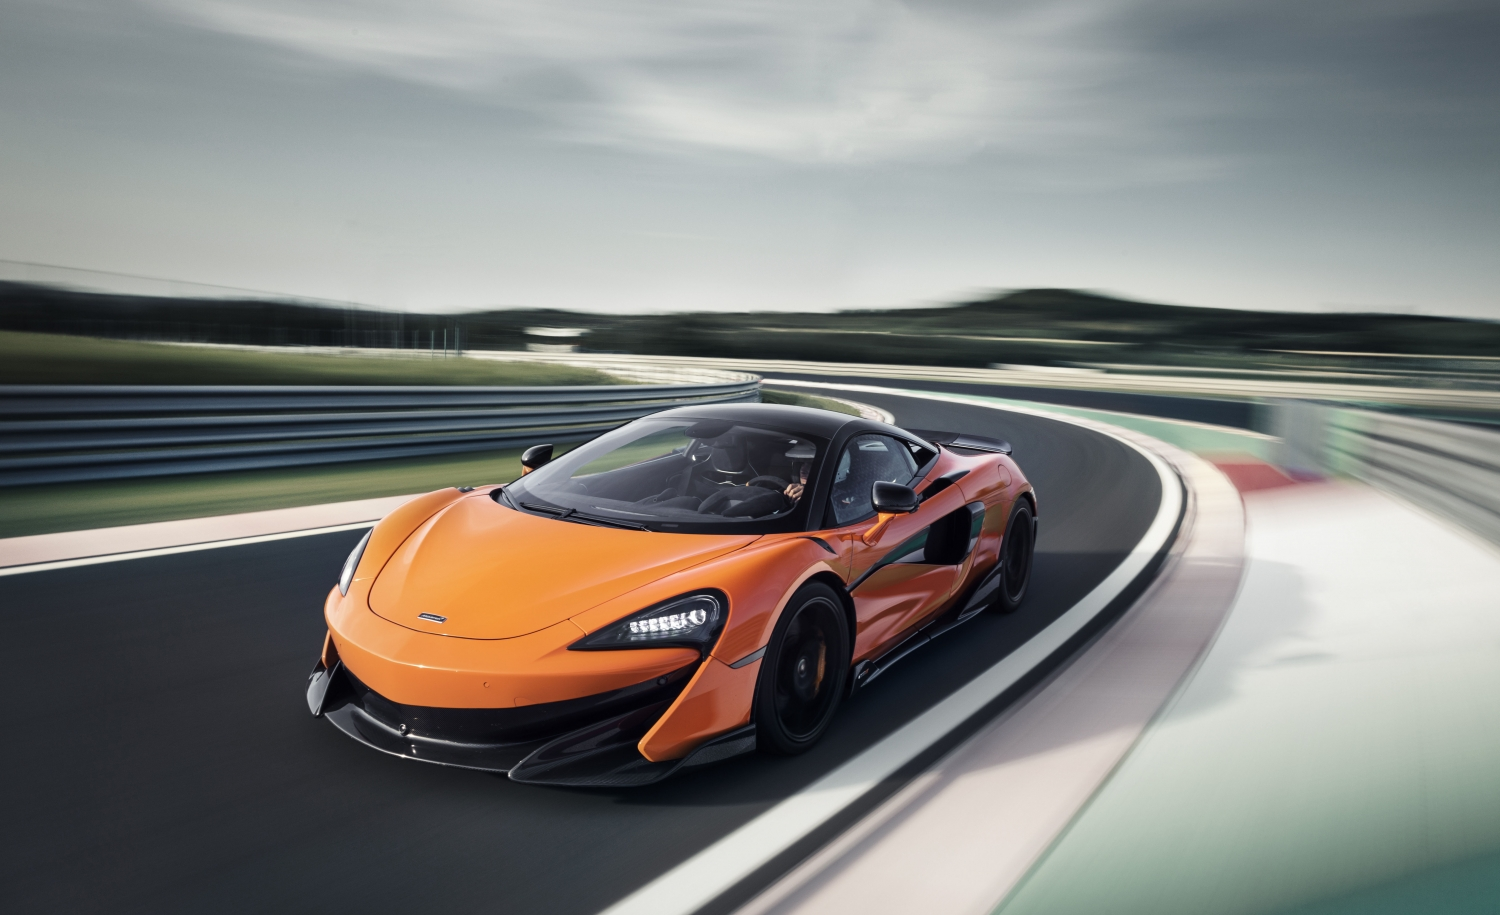 Model Perspective: McLaren 600LT Close Up Action Shot of Orange Longtail Racing On a Track. SportsCar Financing